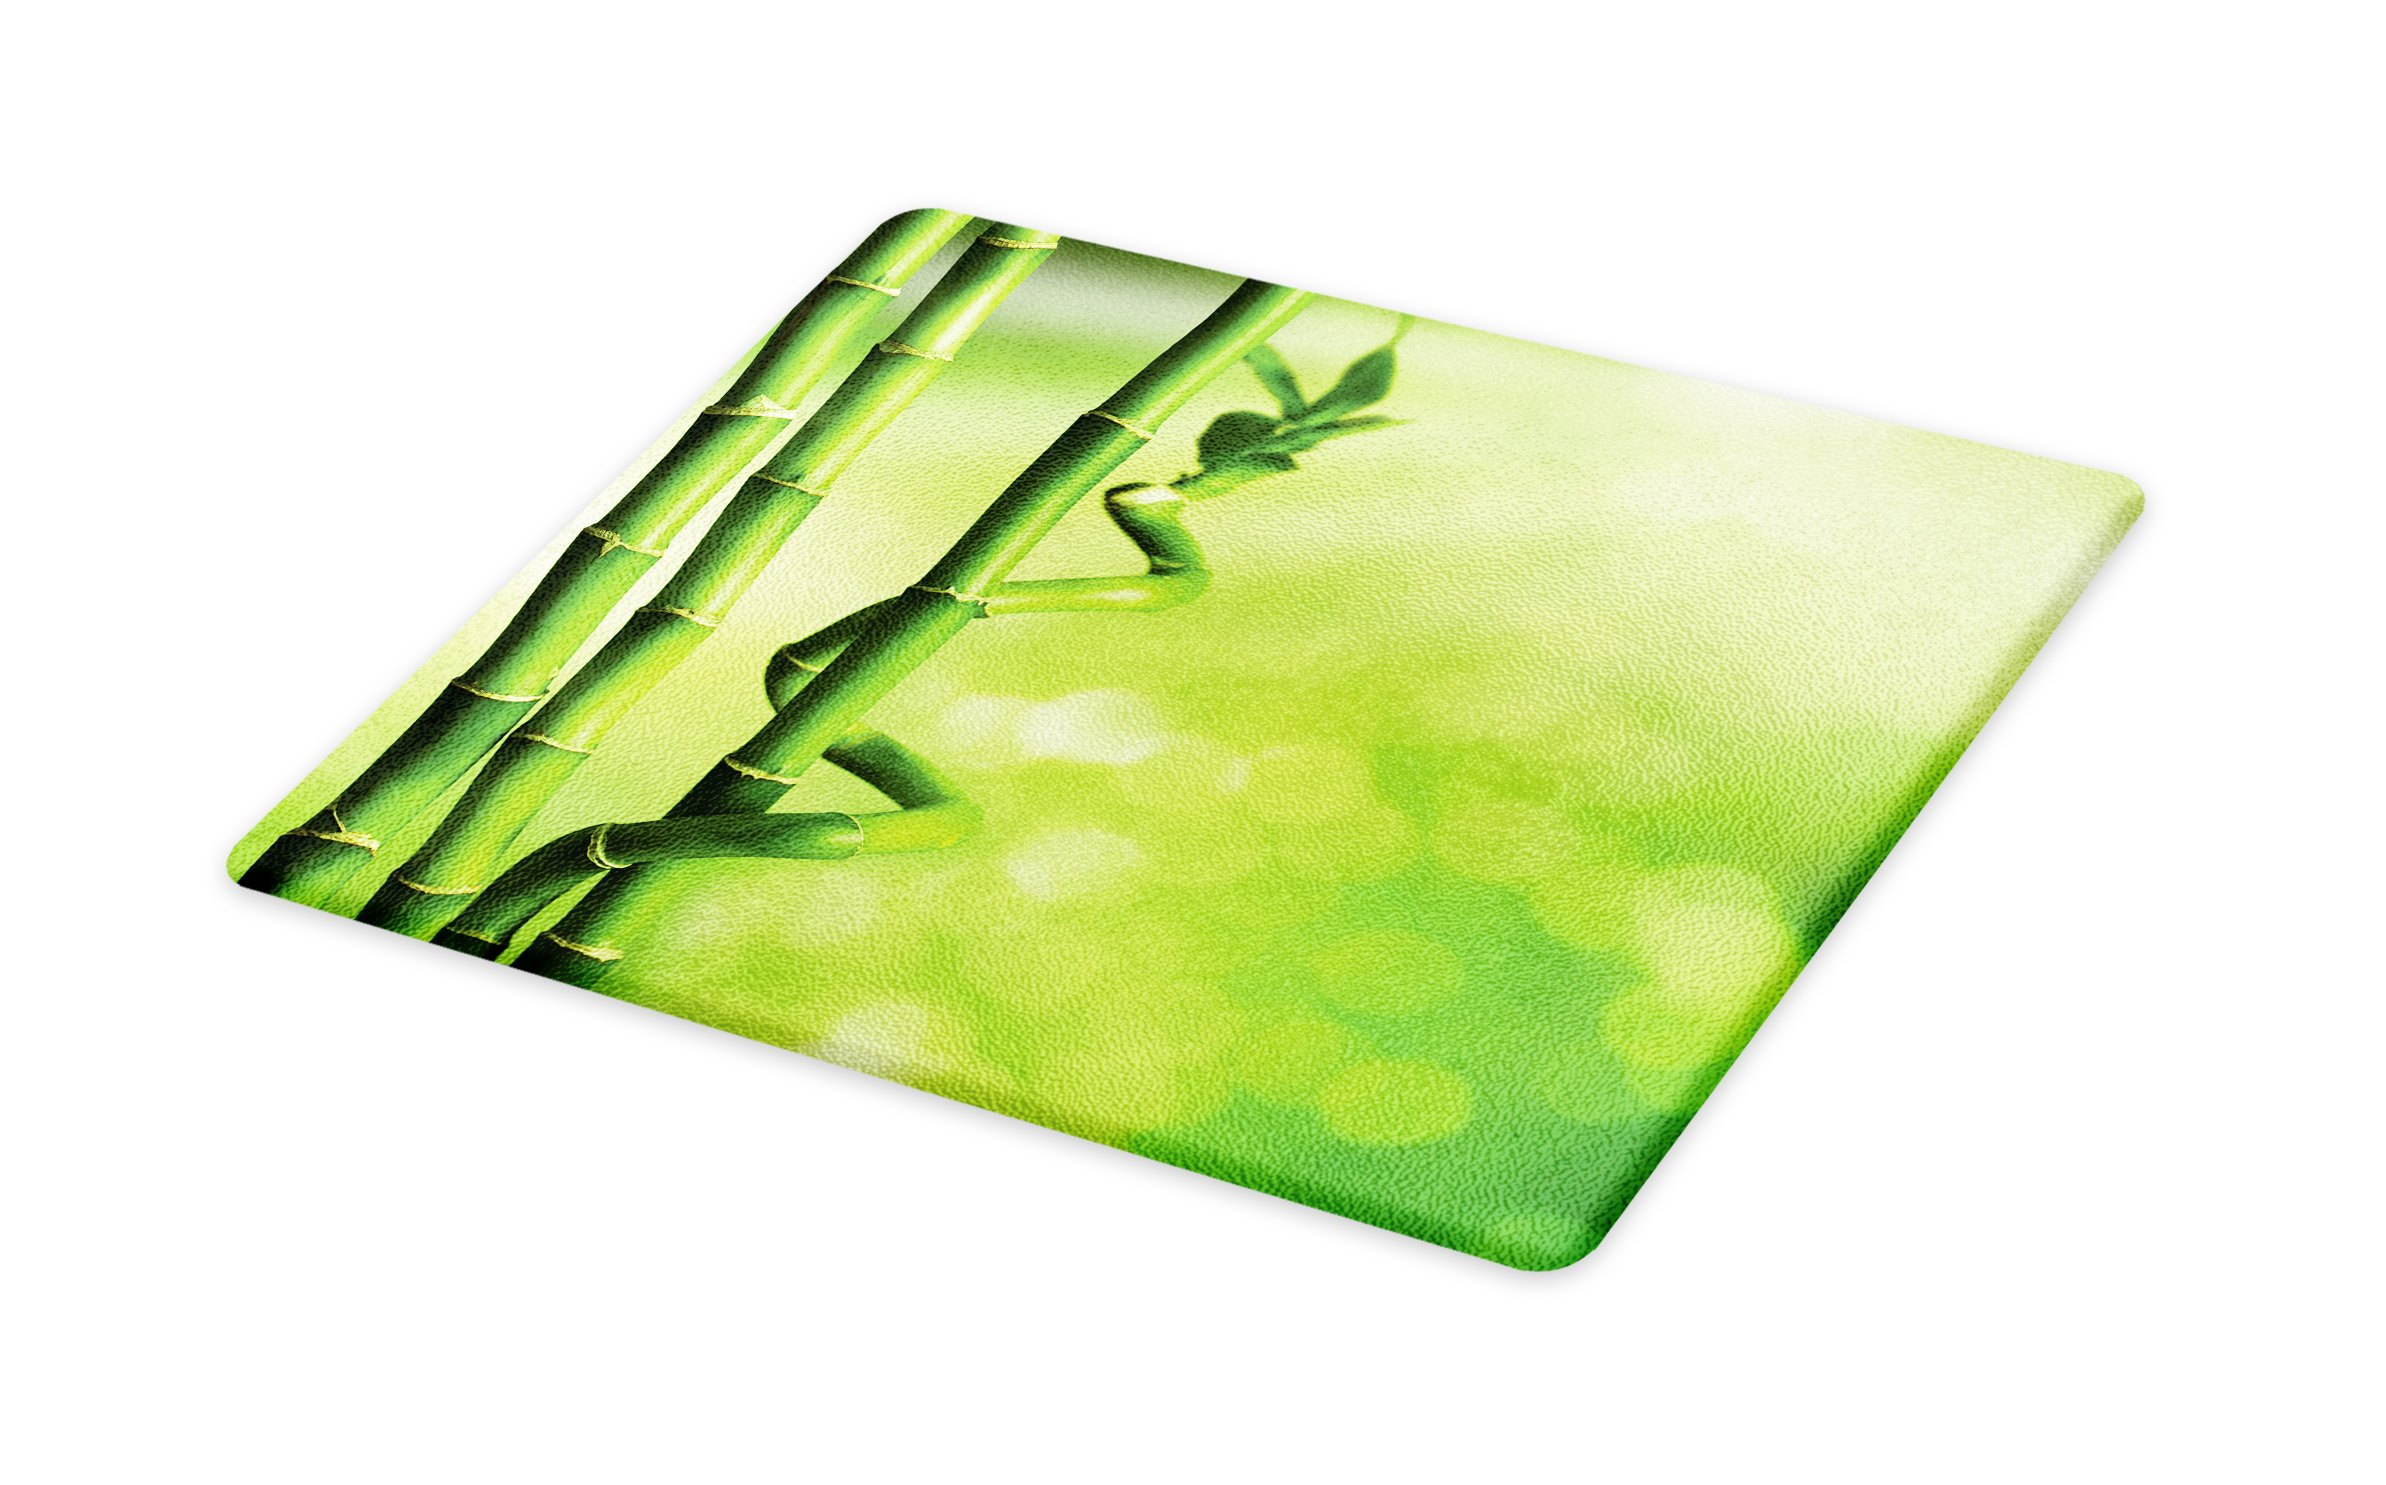 Lunarable Green Cutting Board, Bamboo Stems Nature Ecology Sunbeams Soft Spring Scenic Spa Health Relaxation, Decorative Tempered Glass Cutting and Serving Board, Large Size, Green Pale Green